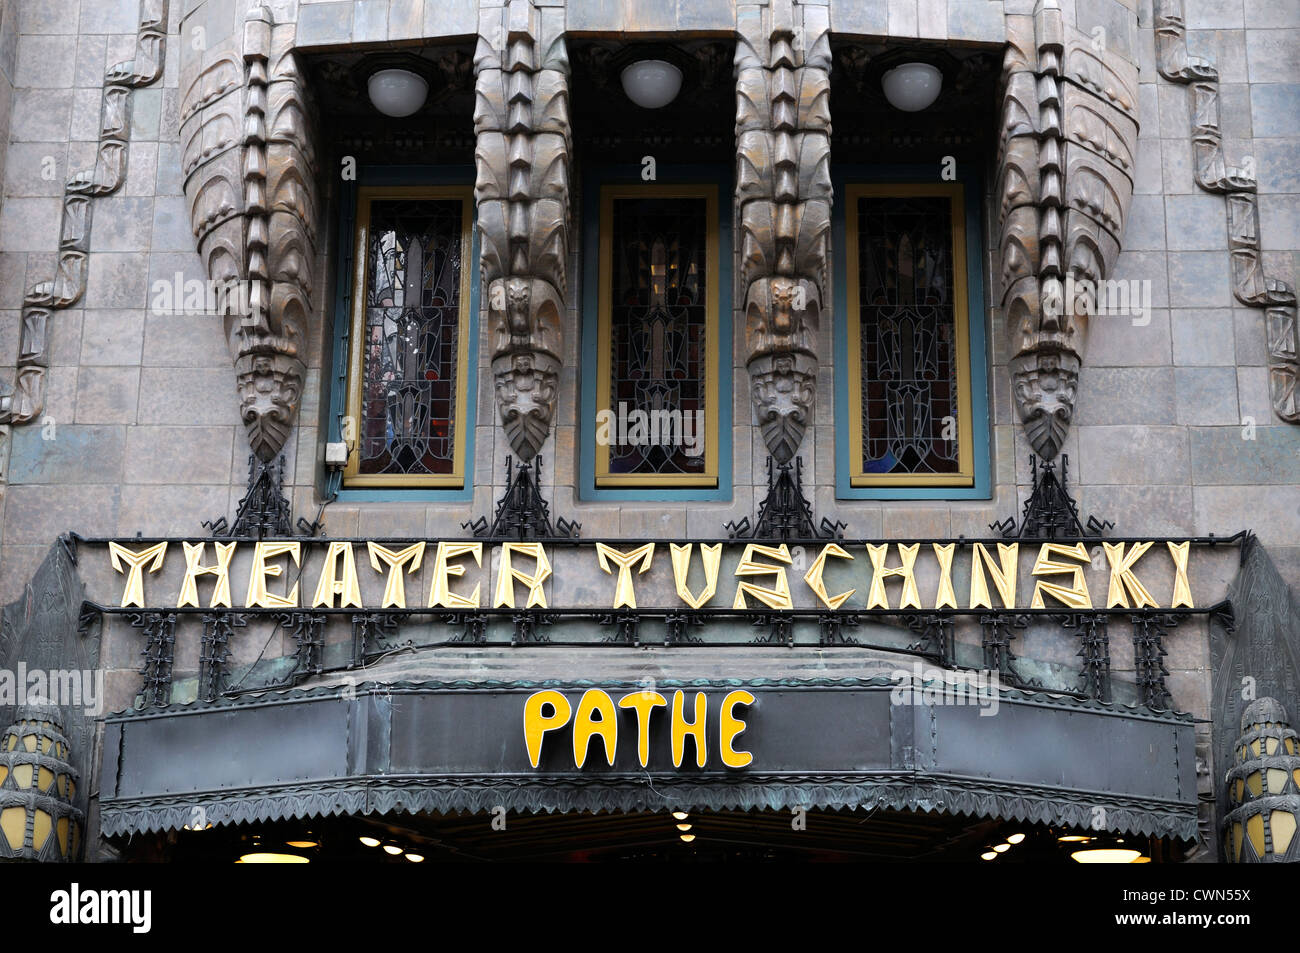 Tuschinski Theatre Pathe Cinemas cinema front facade Reguliersbreestraat amsterdam art deco architecture building - Stock Image